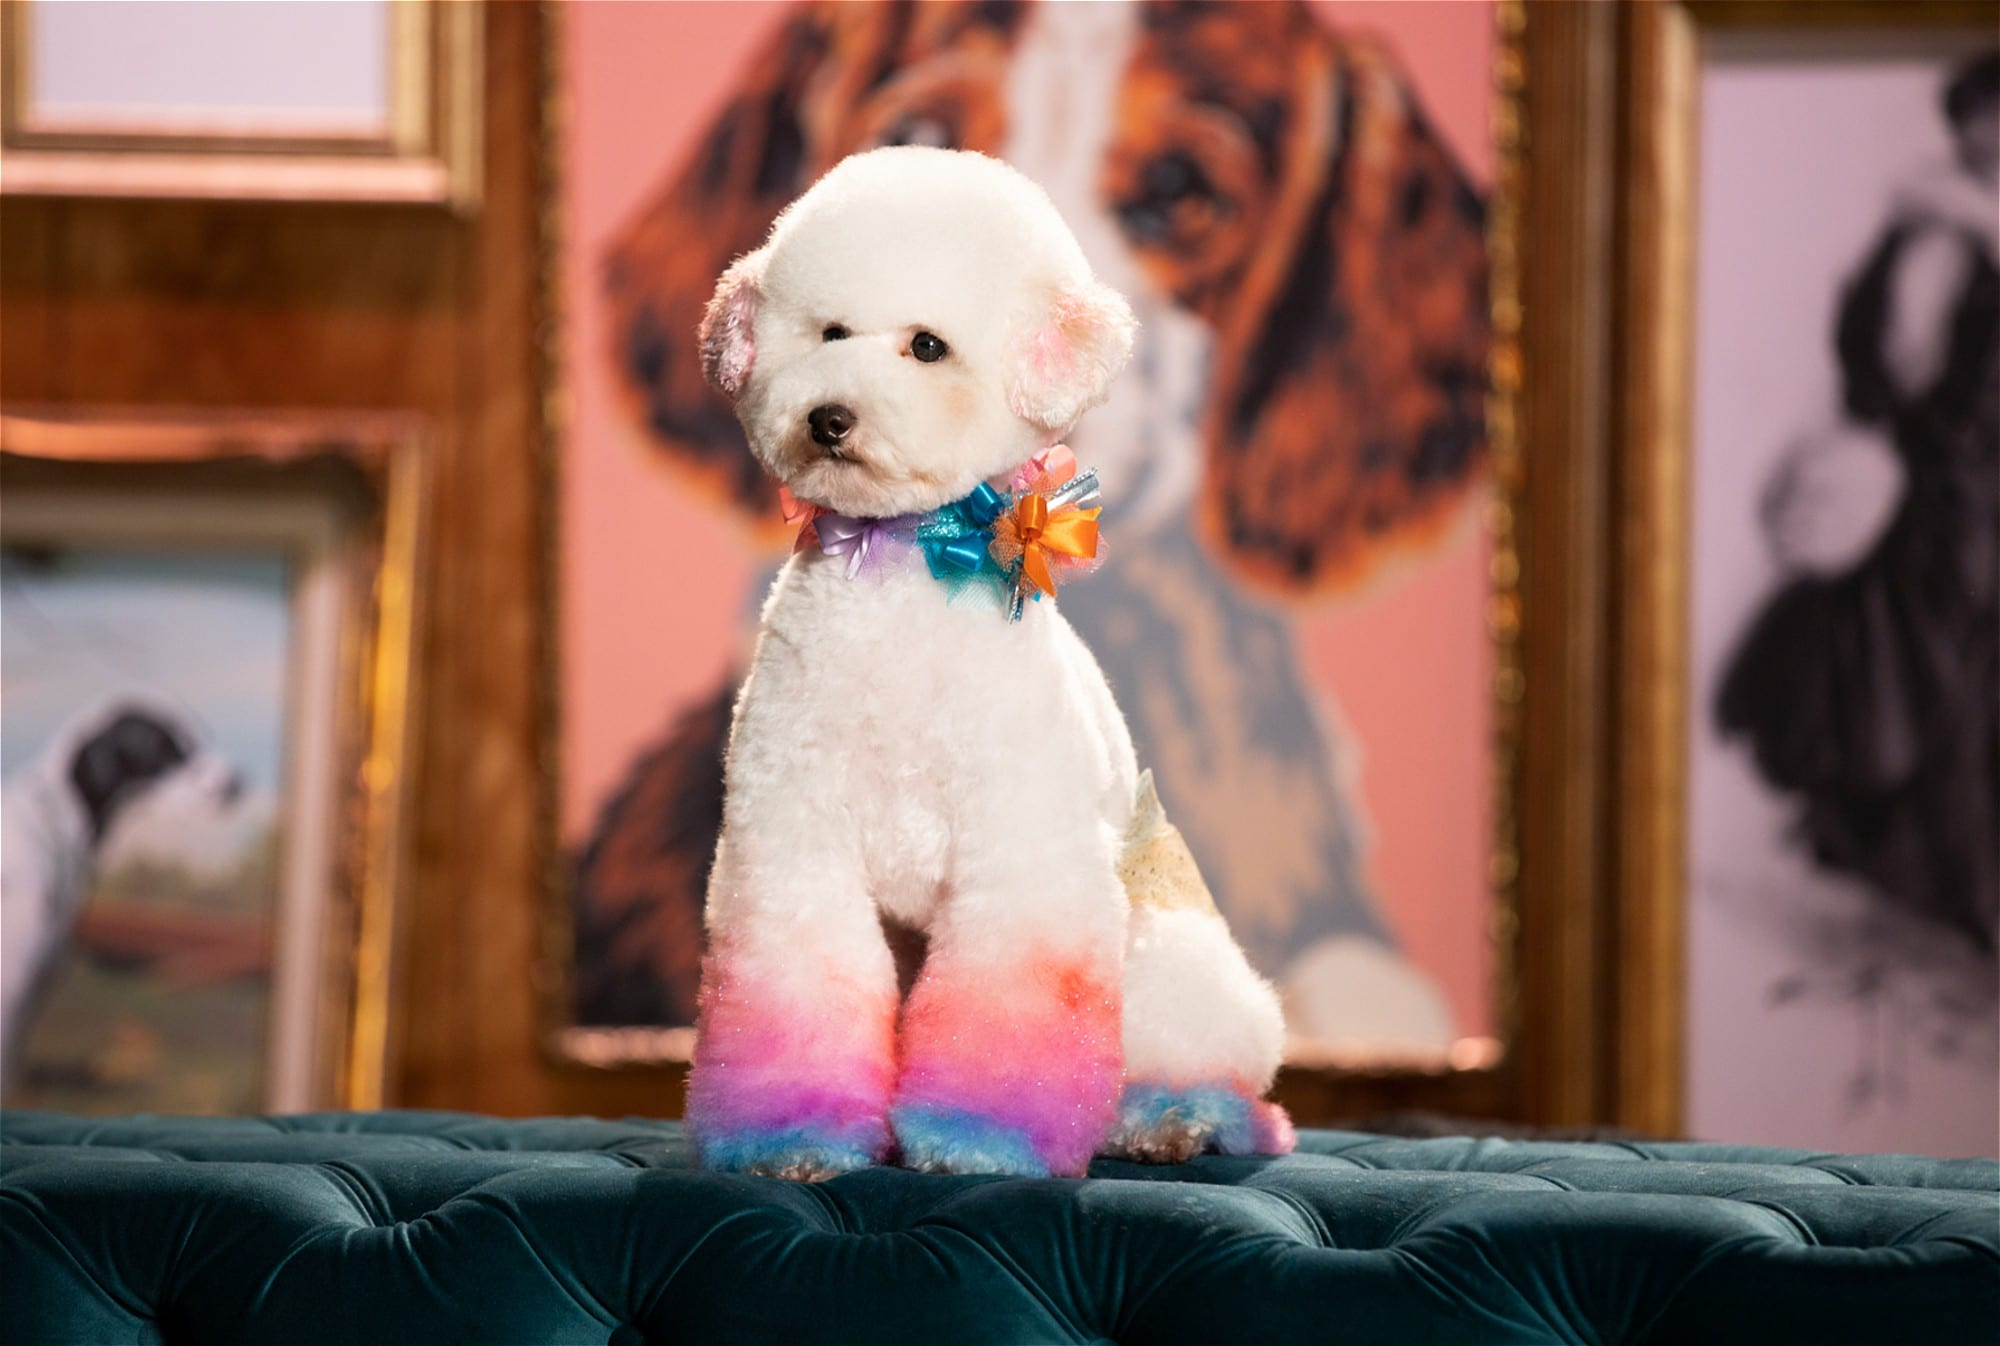 5 Binge-Worthy Dog Shows to Watch Right Now